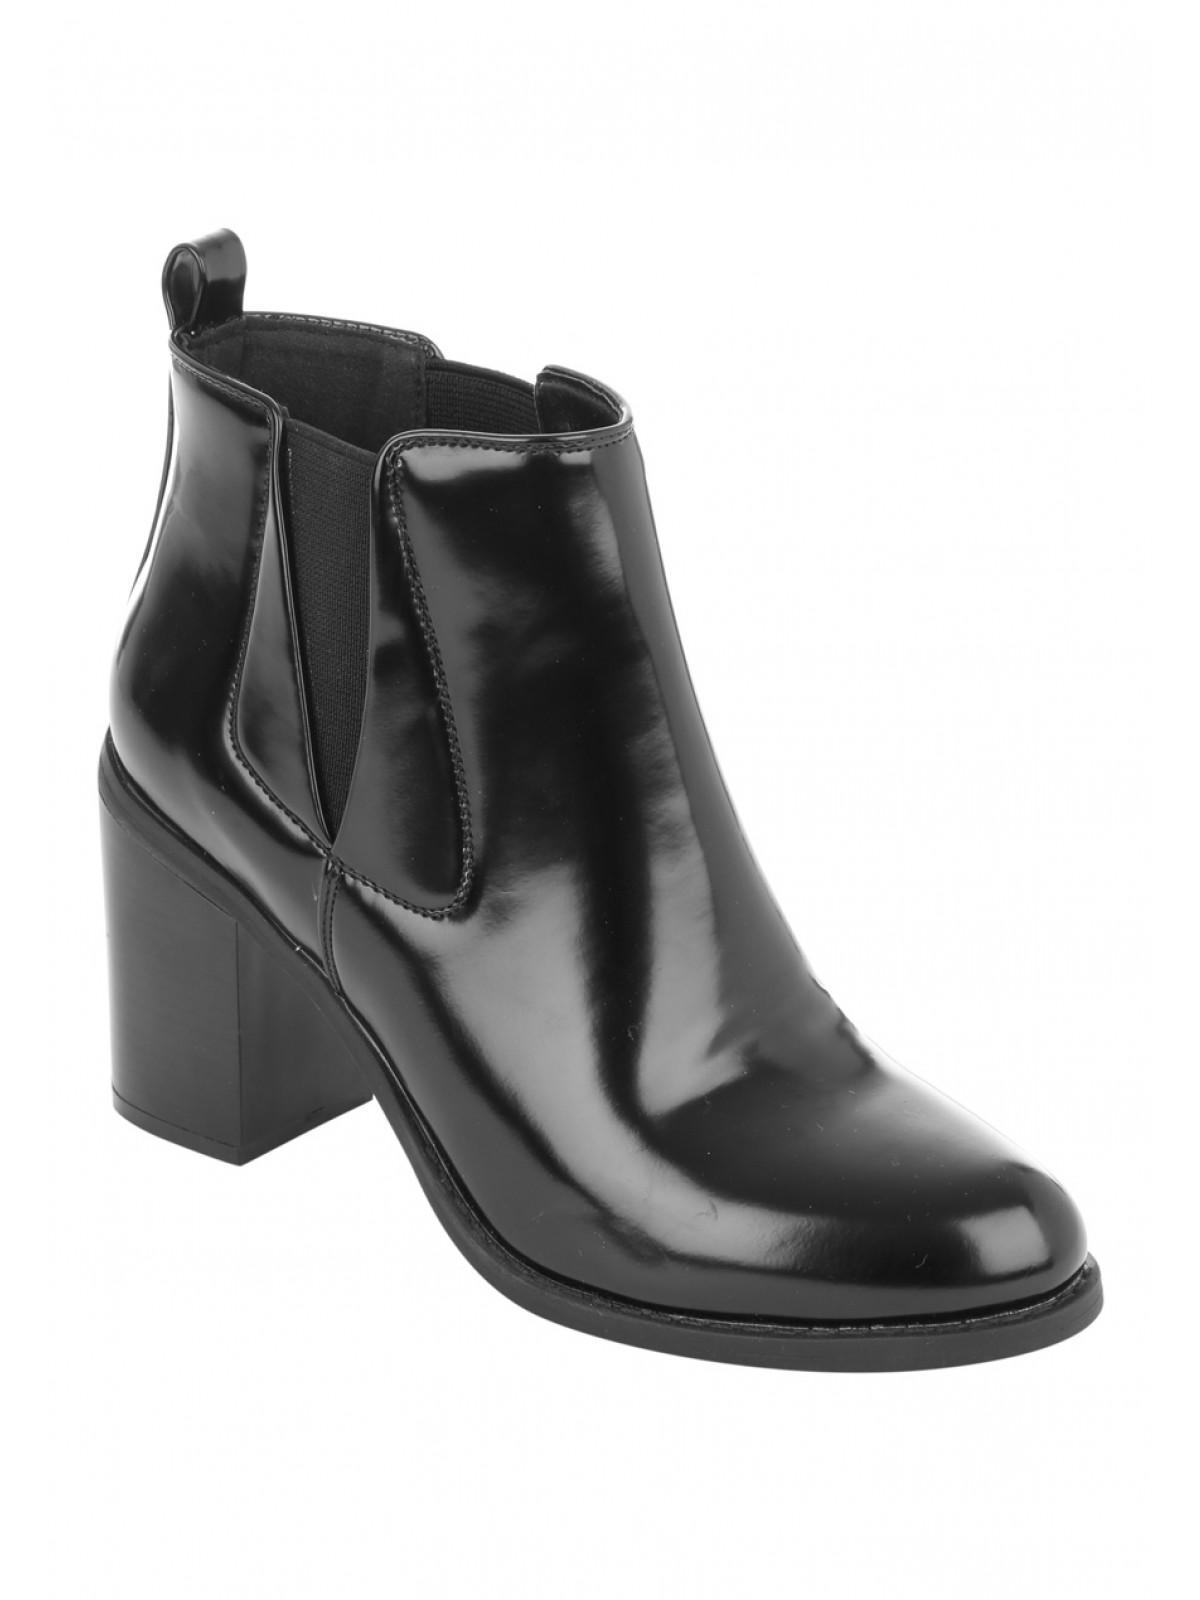 8fc3a7f727 Home; Womens Block Heel Ankle Boots. Back. PreviousNext